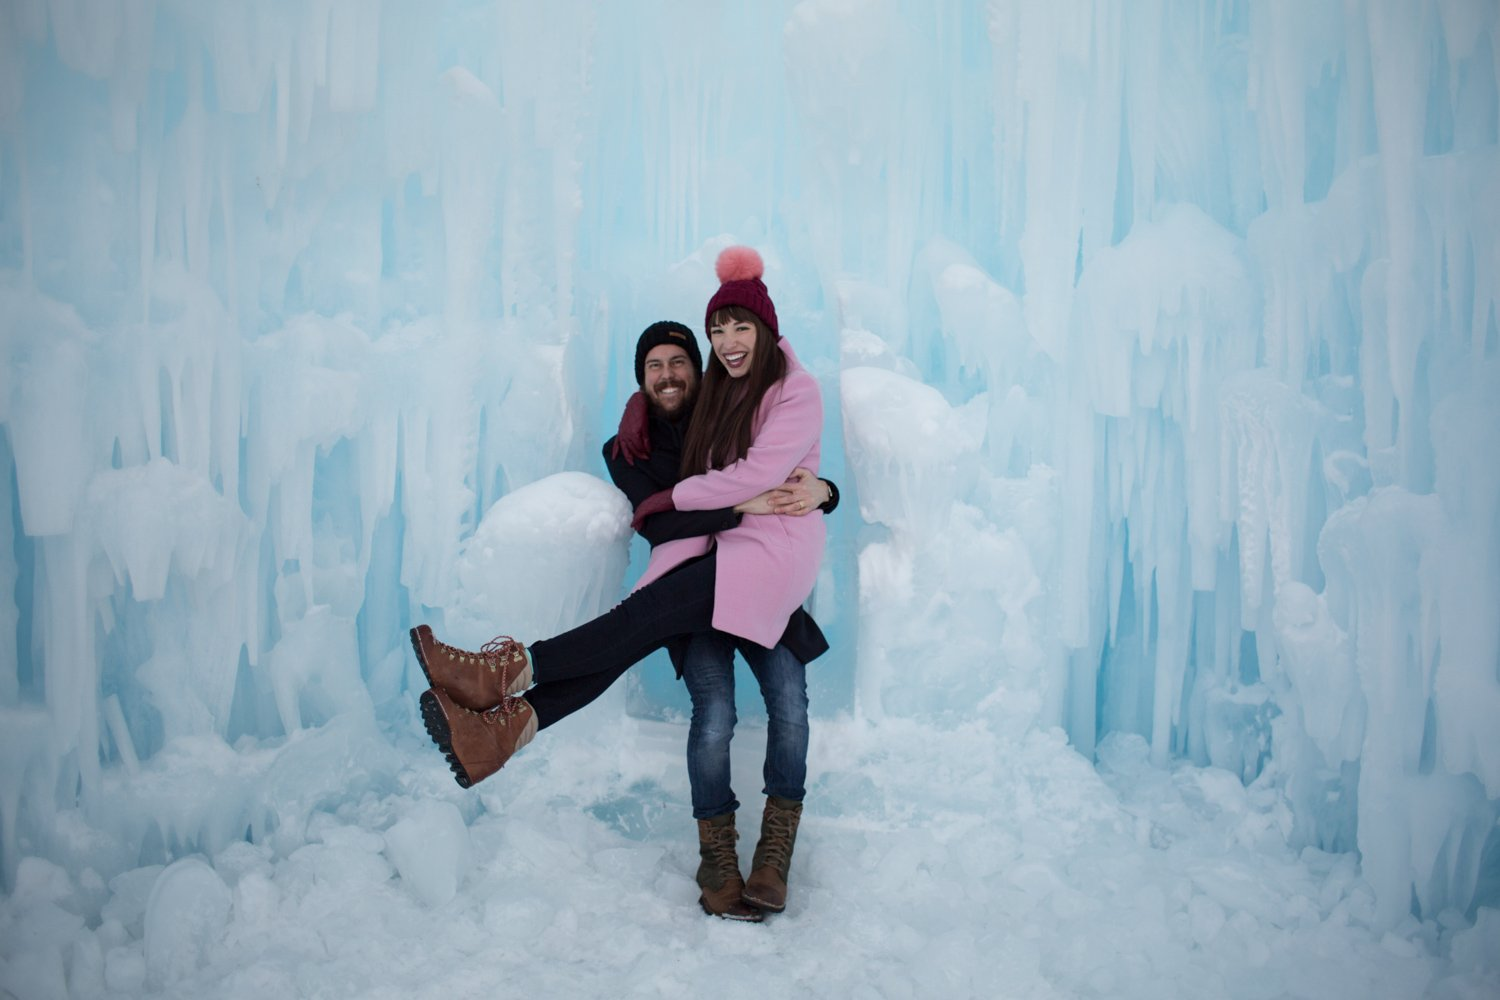 midway-ice-castles-zermont-homestead-3